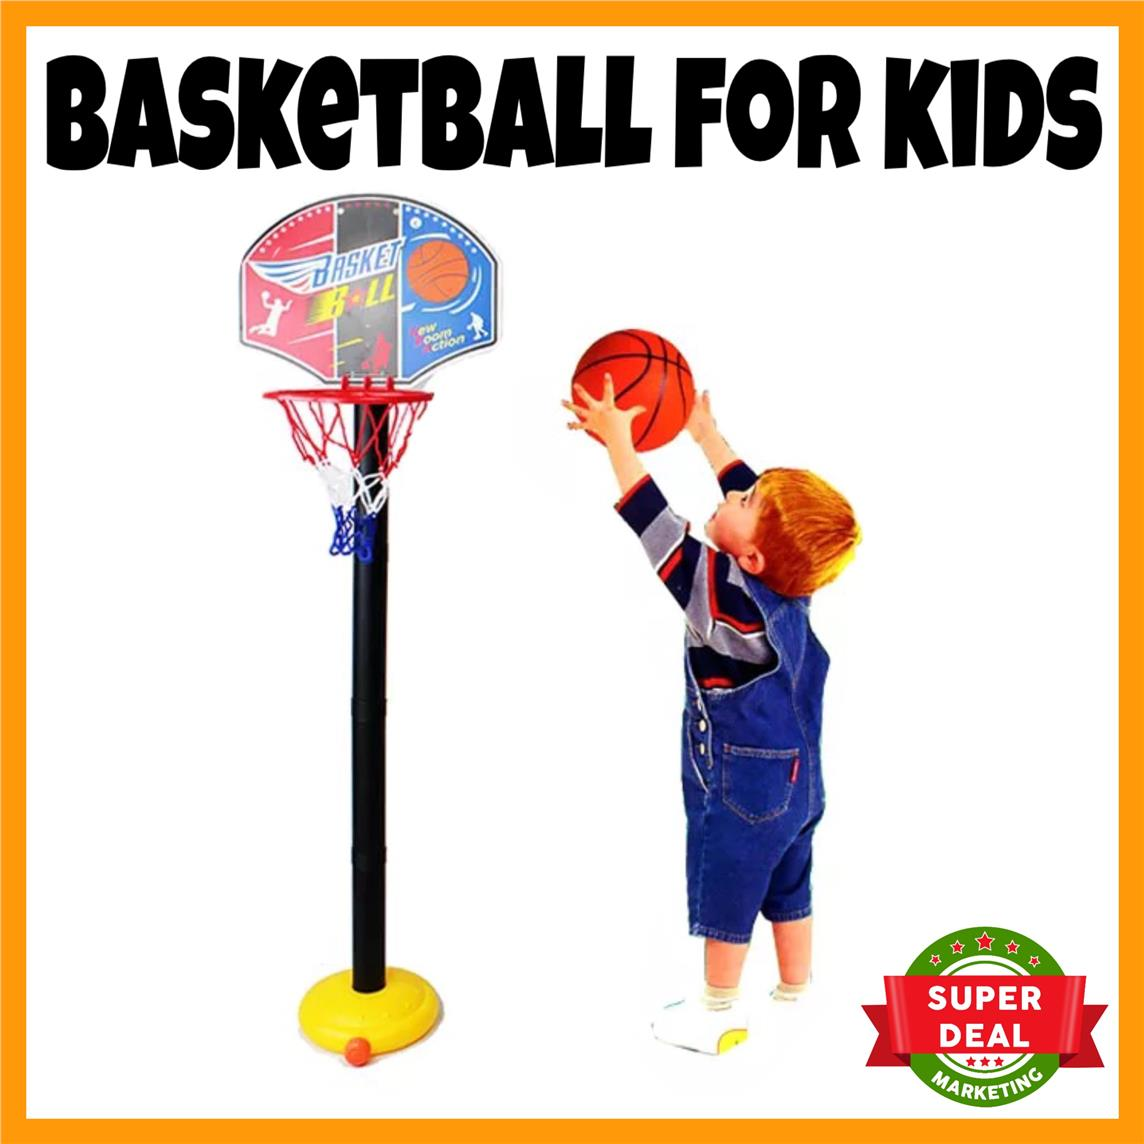 Kids Toy Basketball Home Play Basketball for Kids Sports FREE AIR PUMP